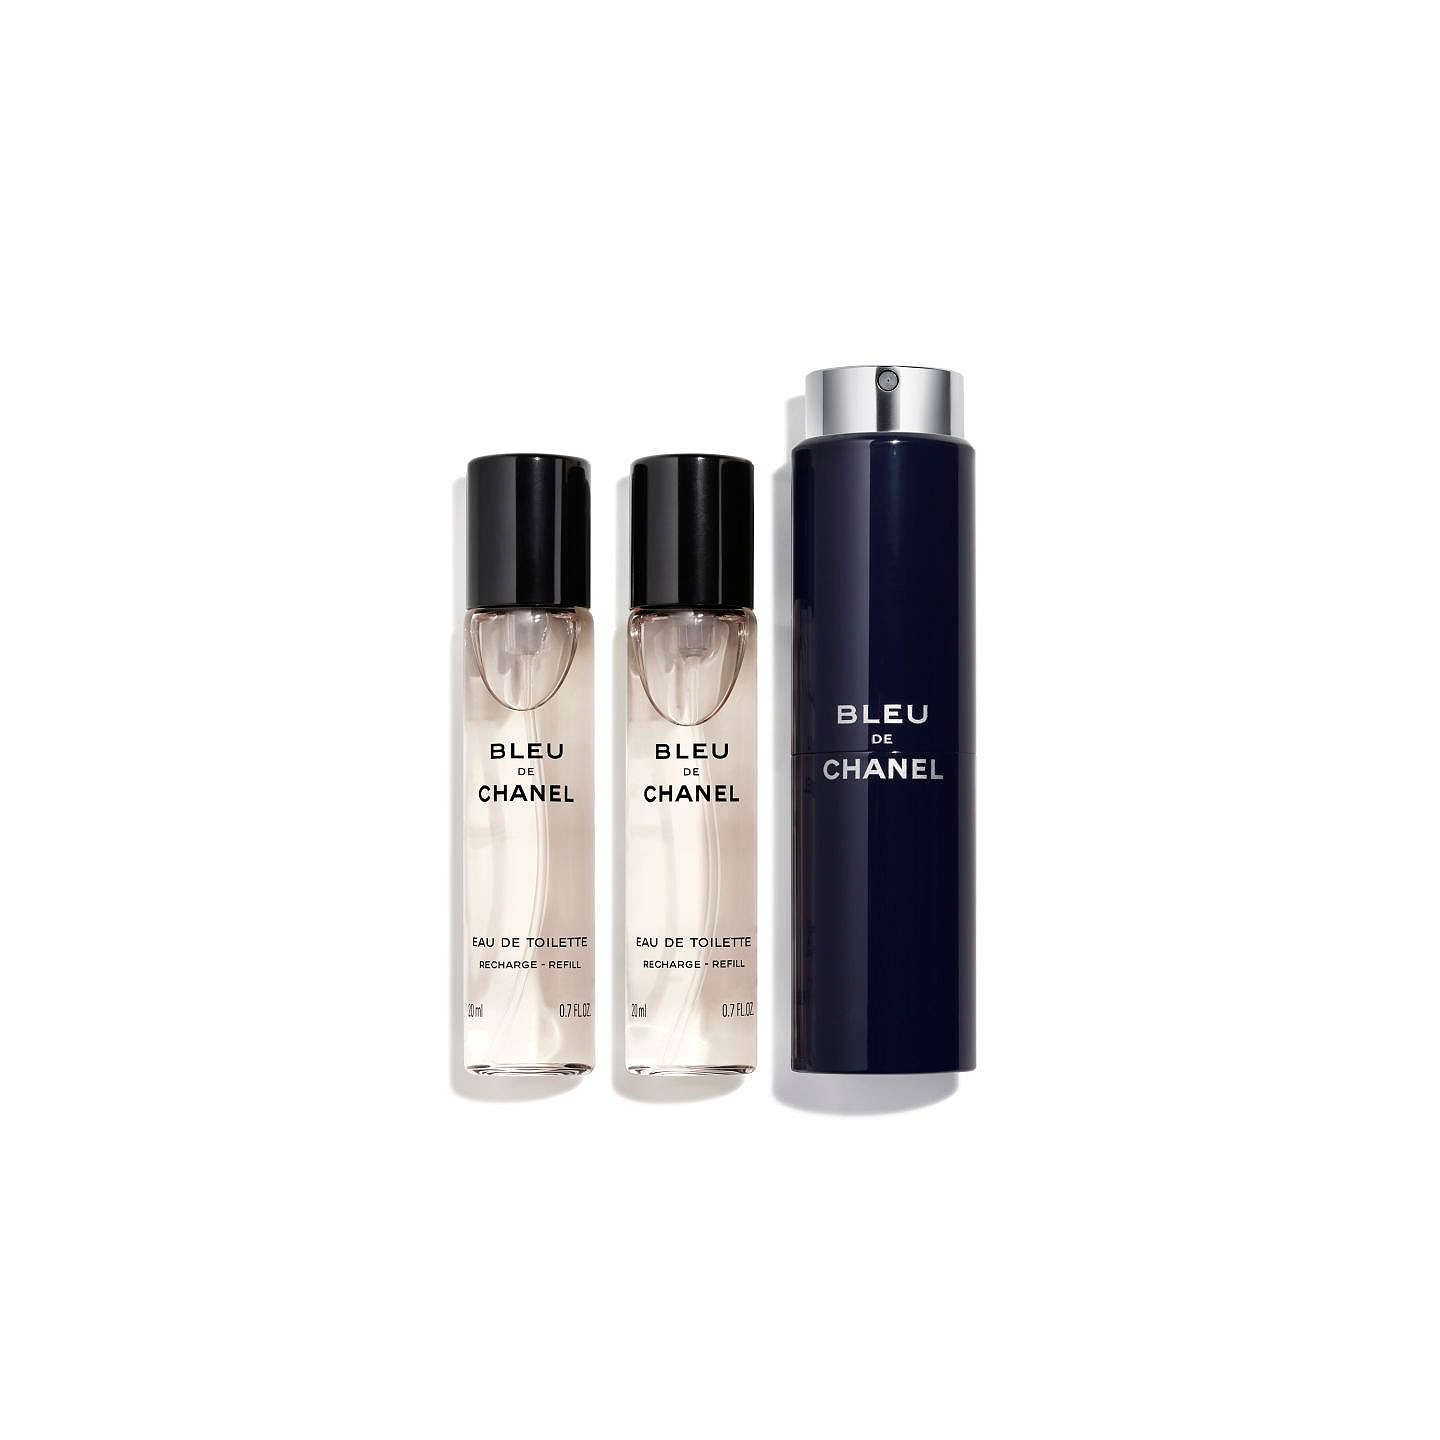 BuyCHANEL BLEU DE CHANEL Refillable Travel Spray 3 x 20ml Online at johnlewis.com